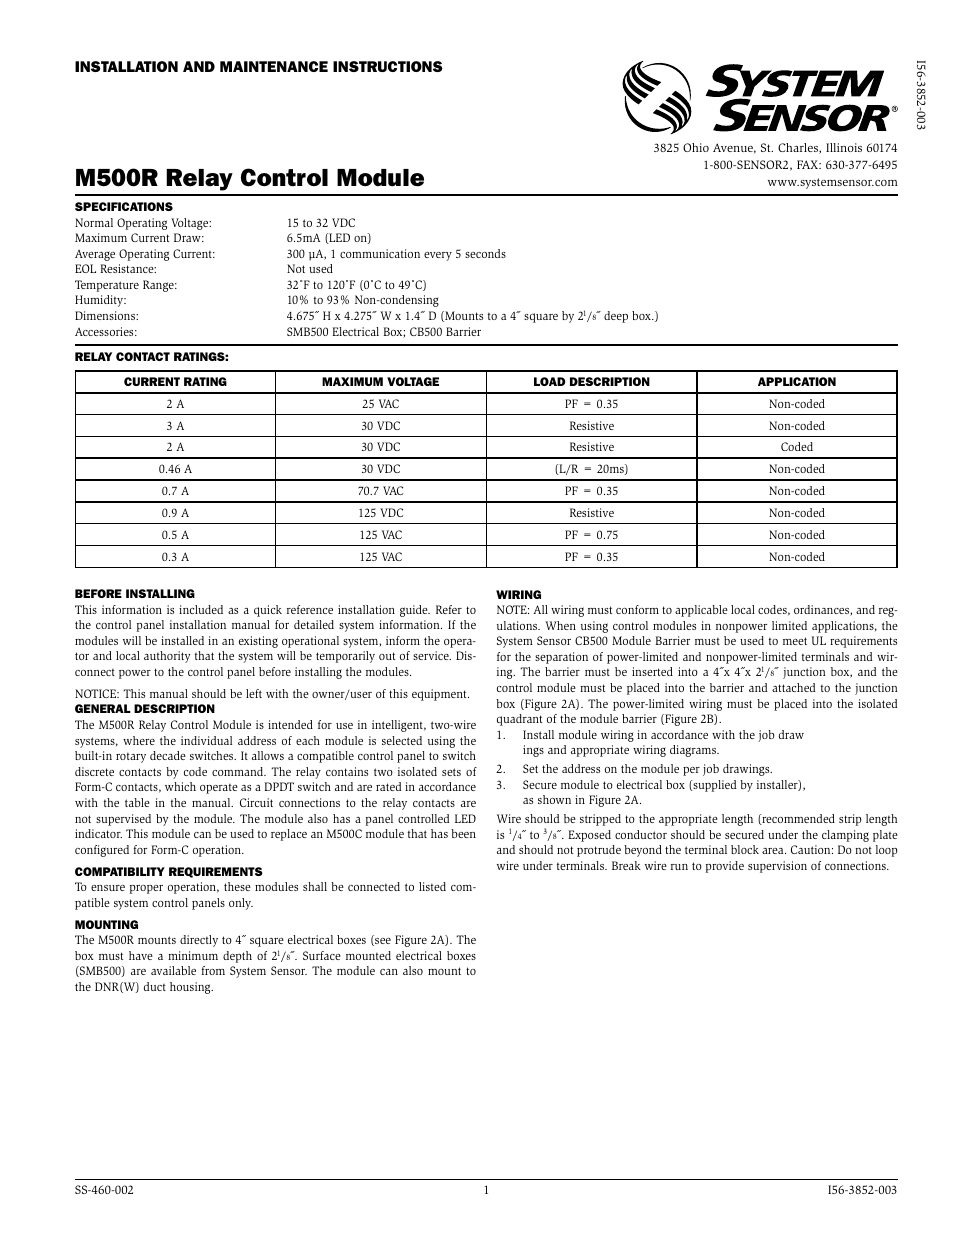 System Sensor Dnr Wiring Diagram 32 Images D4120 Duct Smoke Detector M500r Page1 User Manual 2 Pages